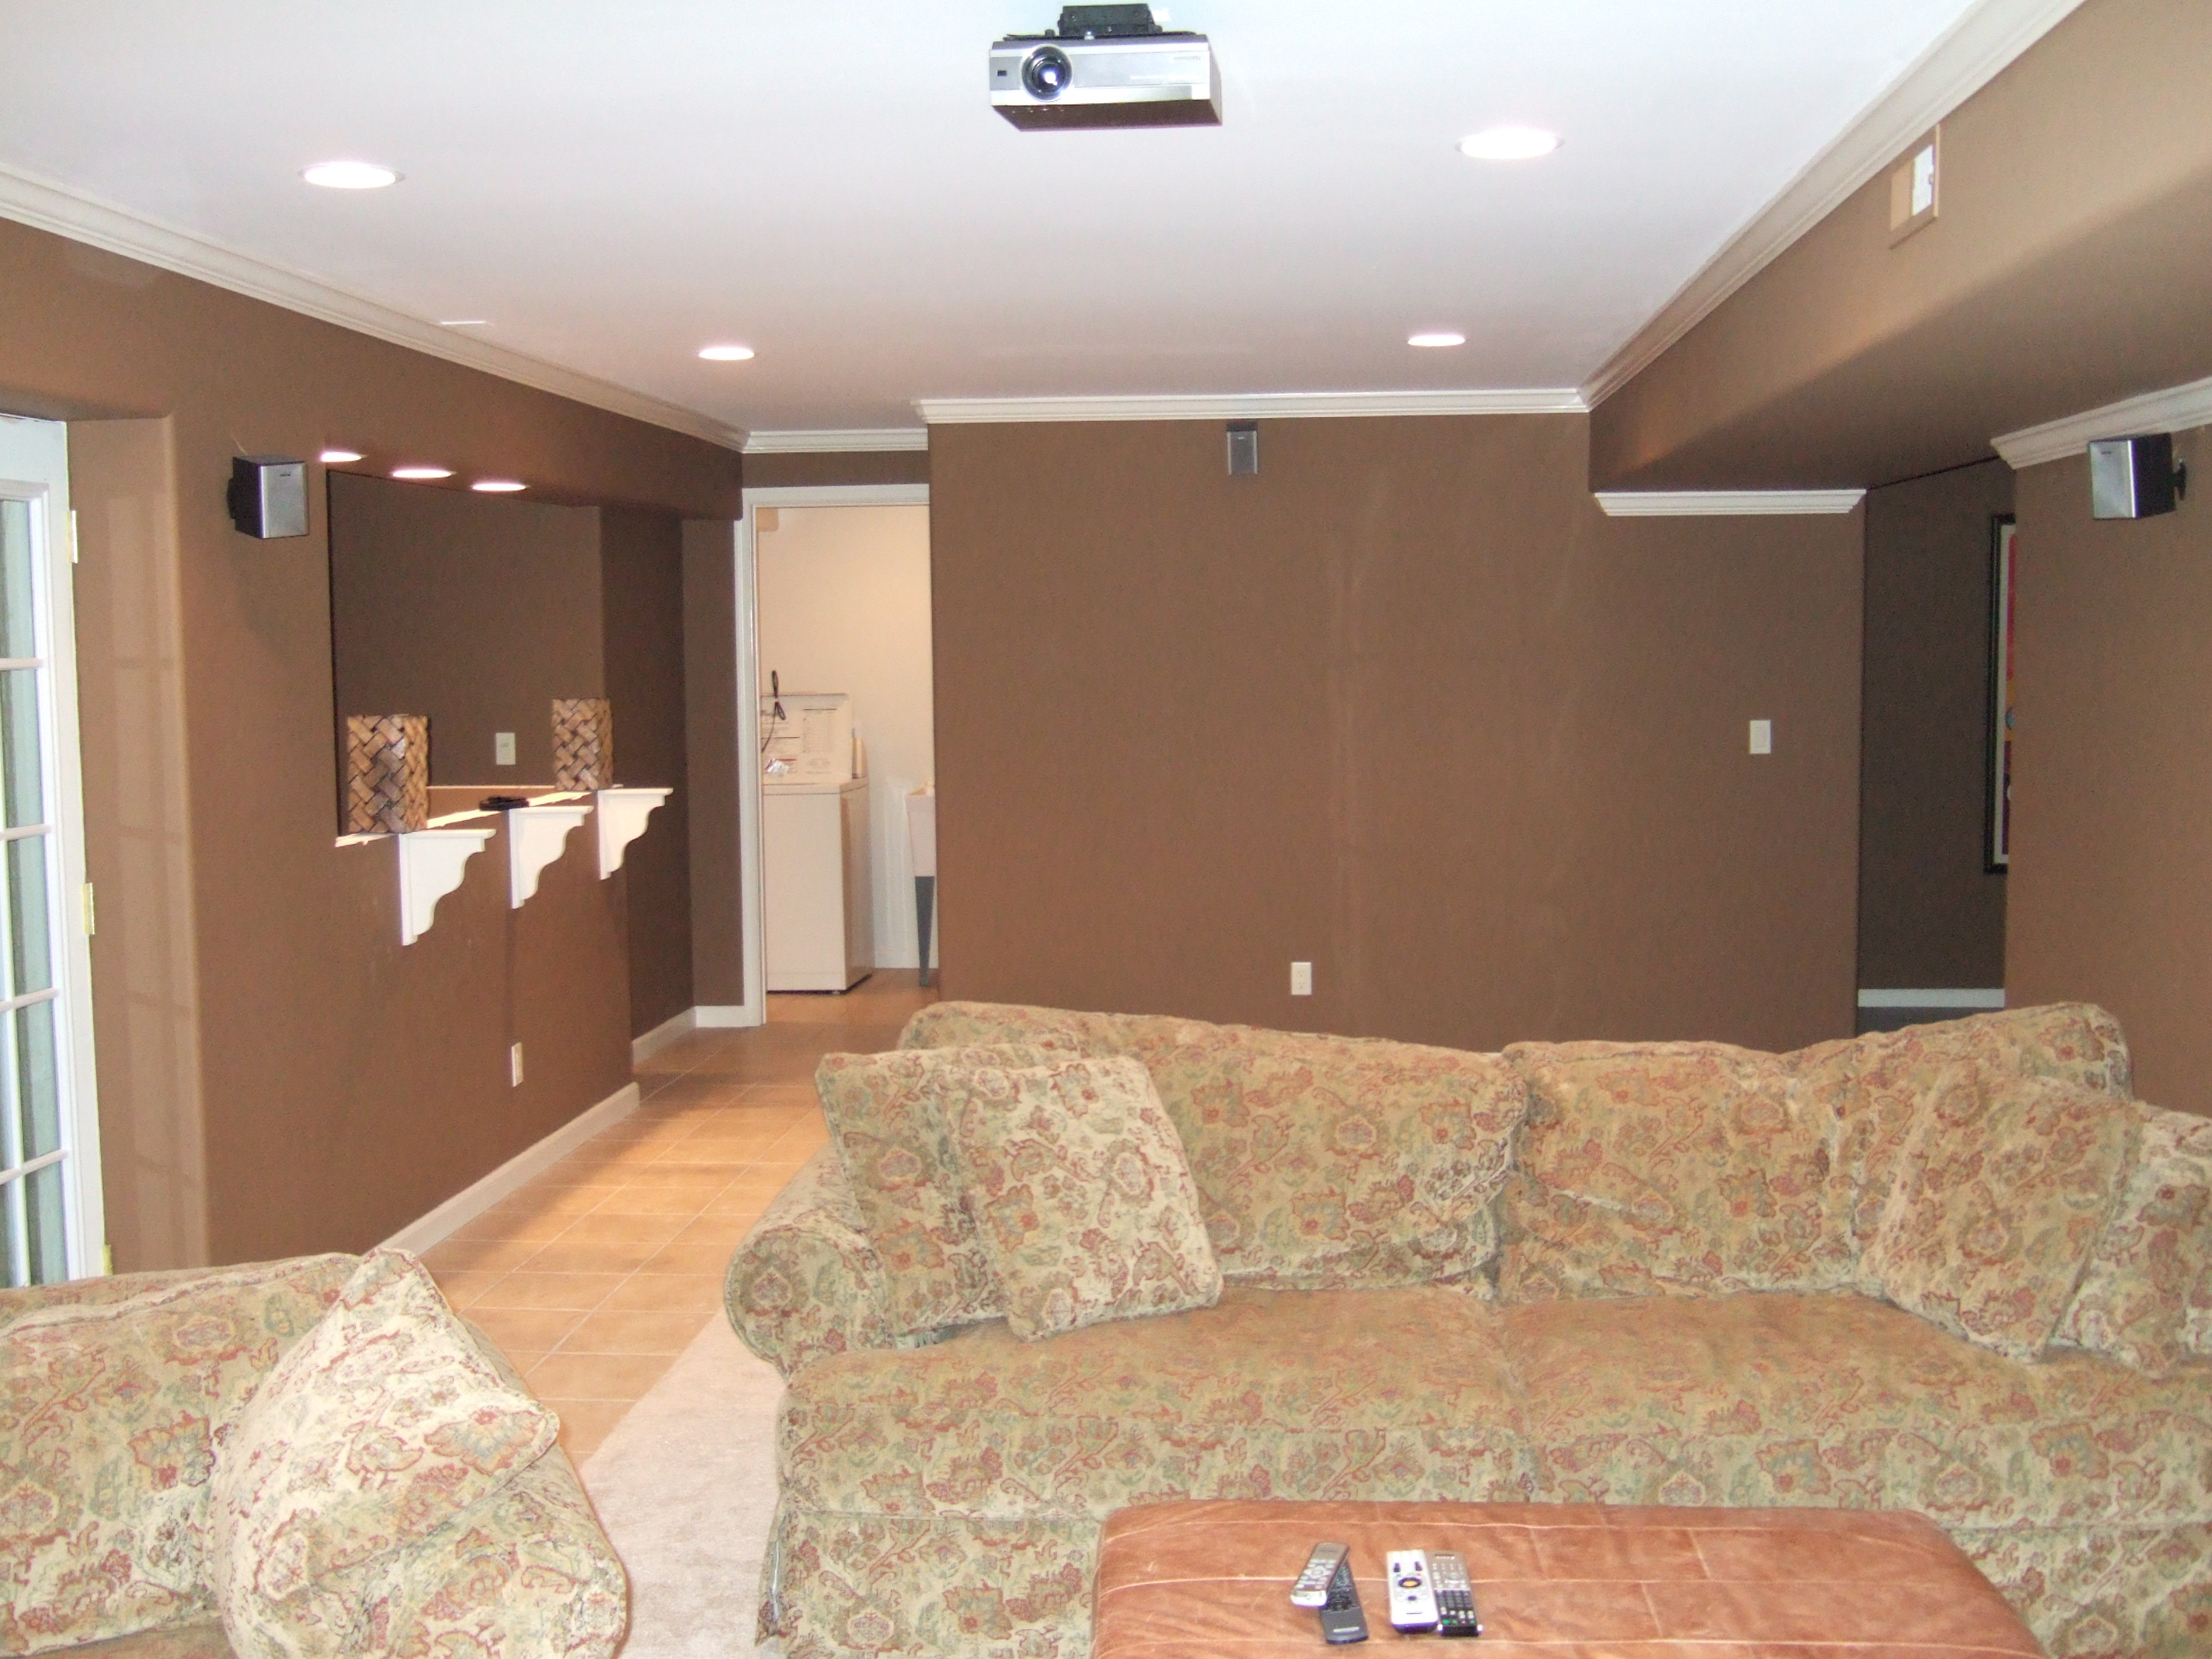 Finished Basement remodeling Fairfax Manassas Pictures Design Tile